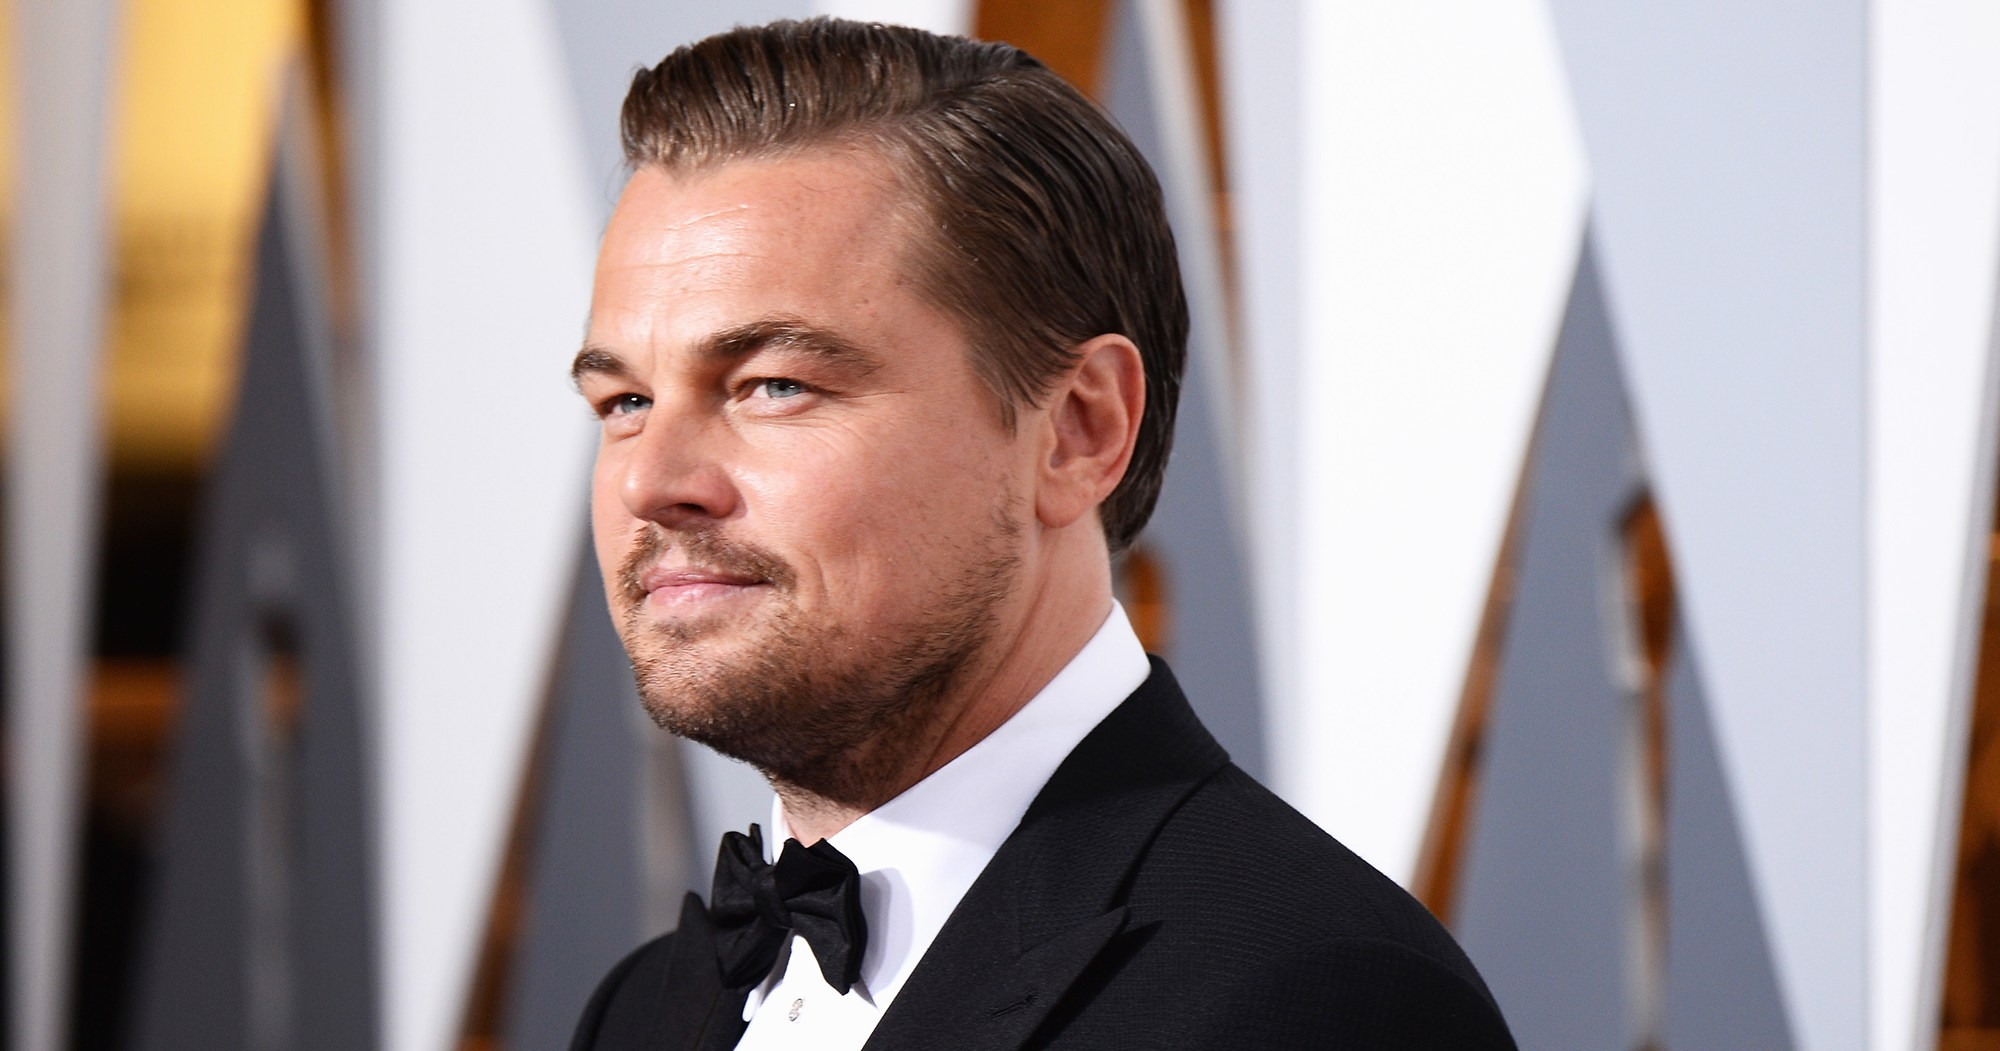 Leonardo DiCaprio Touts Plant-Based Burger Company, Criticizes Beef for Being 'Resource Intensive'